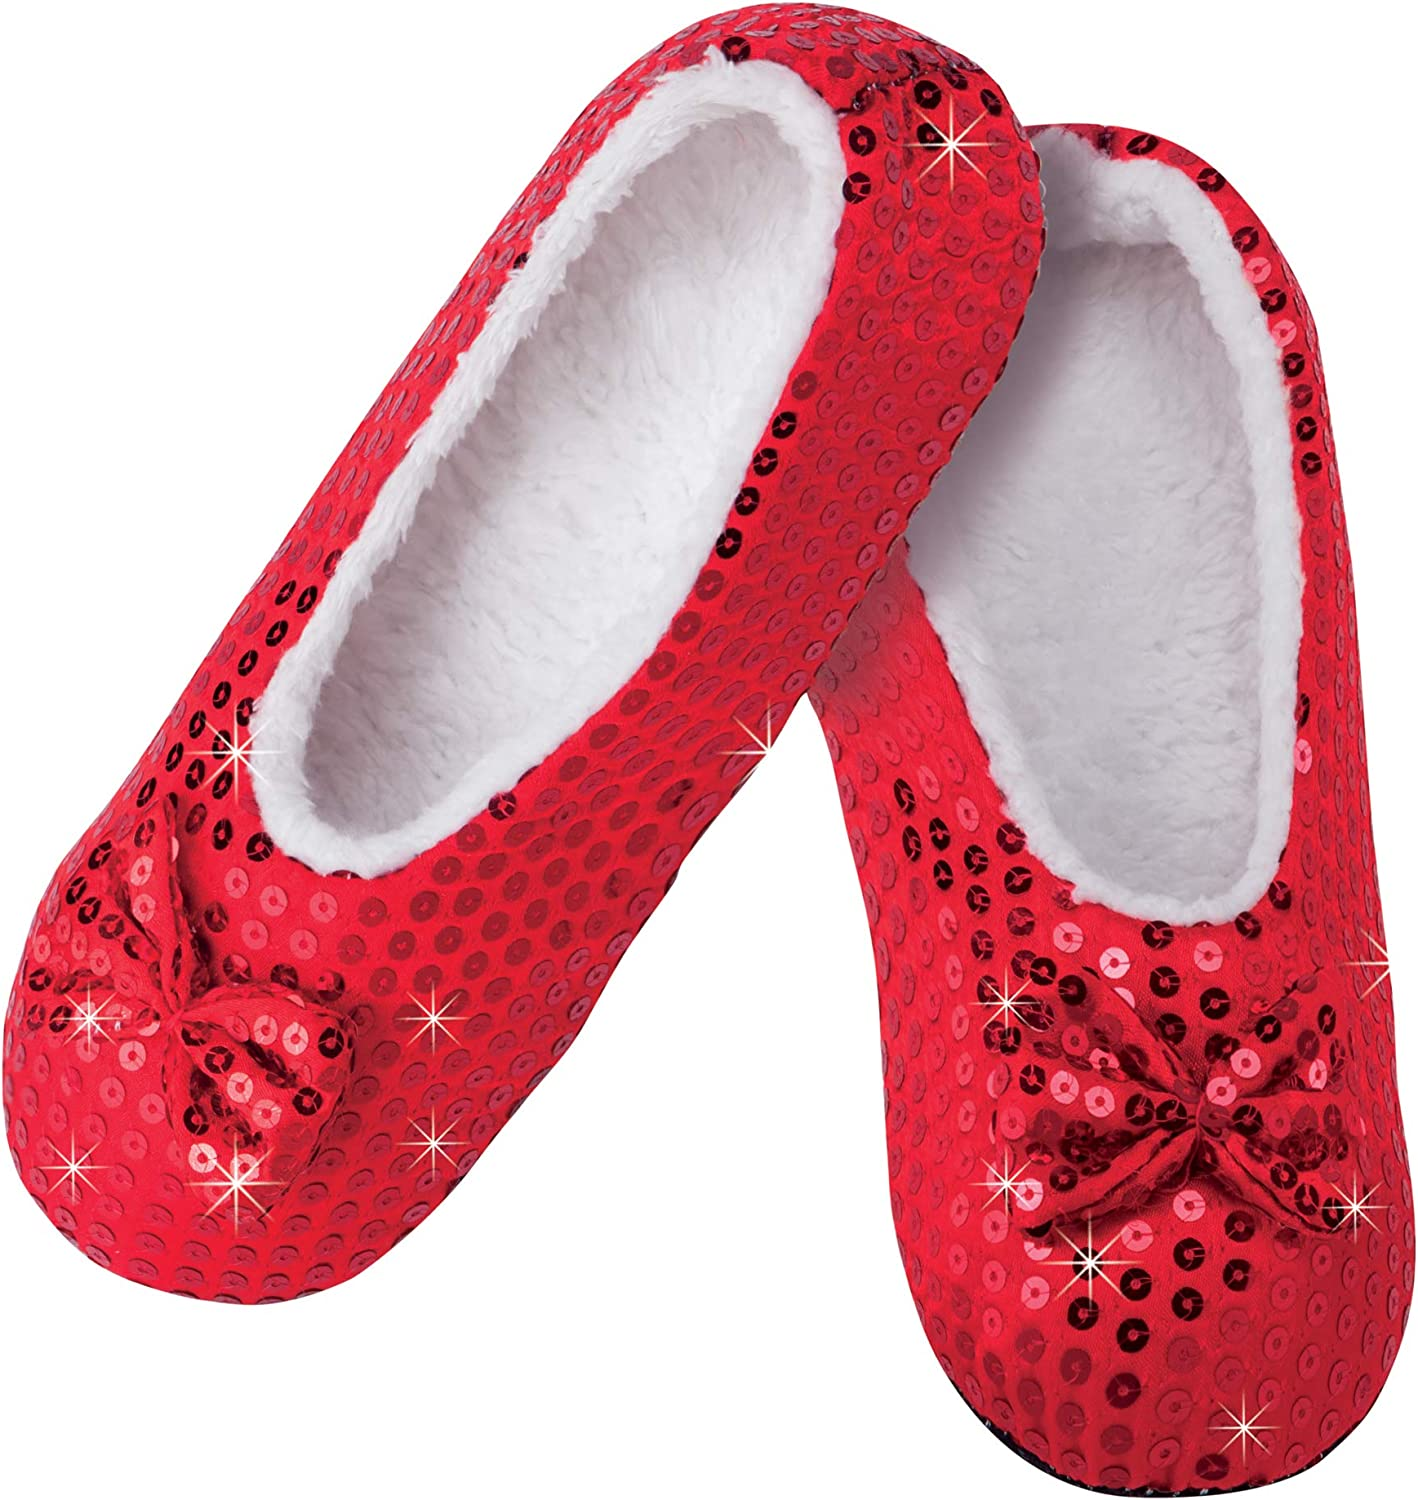 The Paragon Sequined Ballerina Slippers, Cozy and Non Slip, Size Medium Red